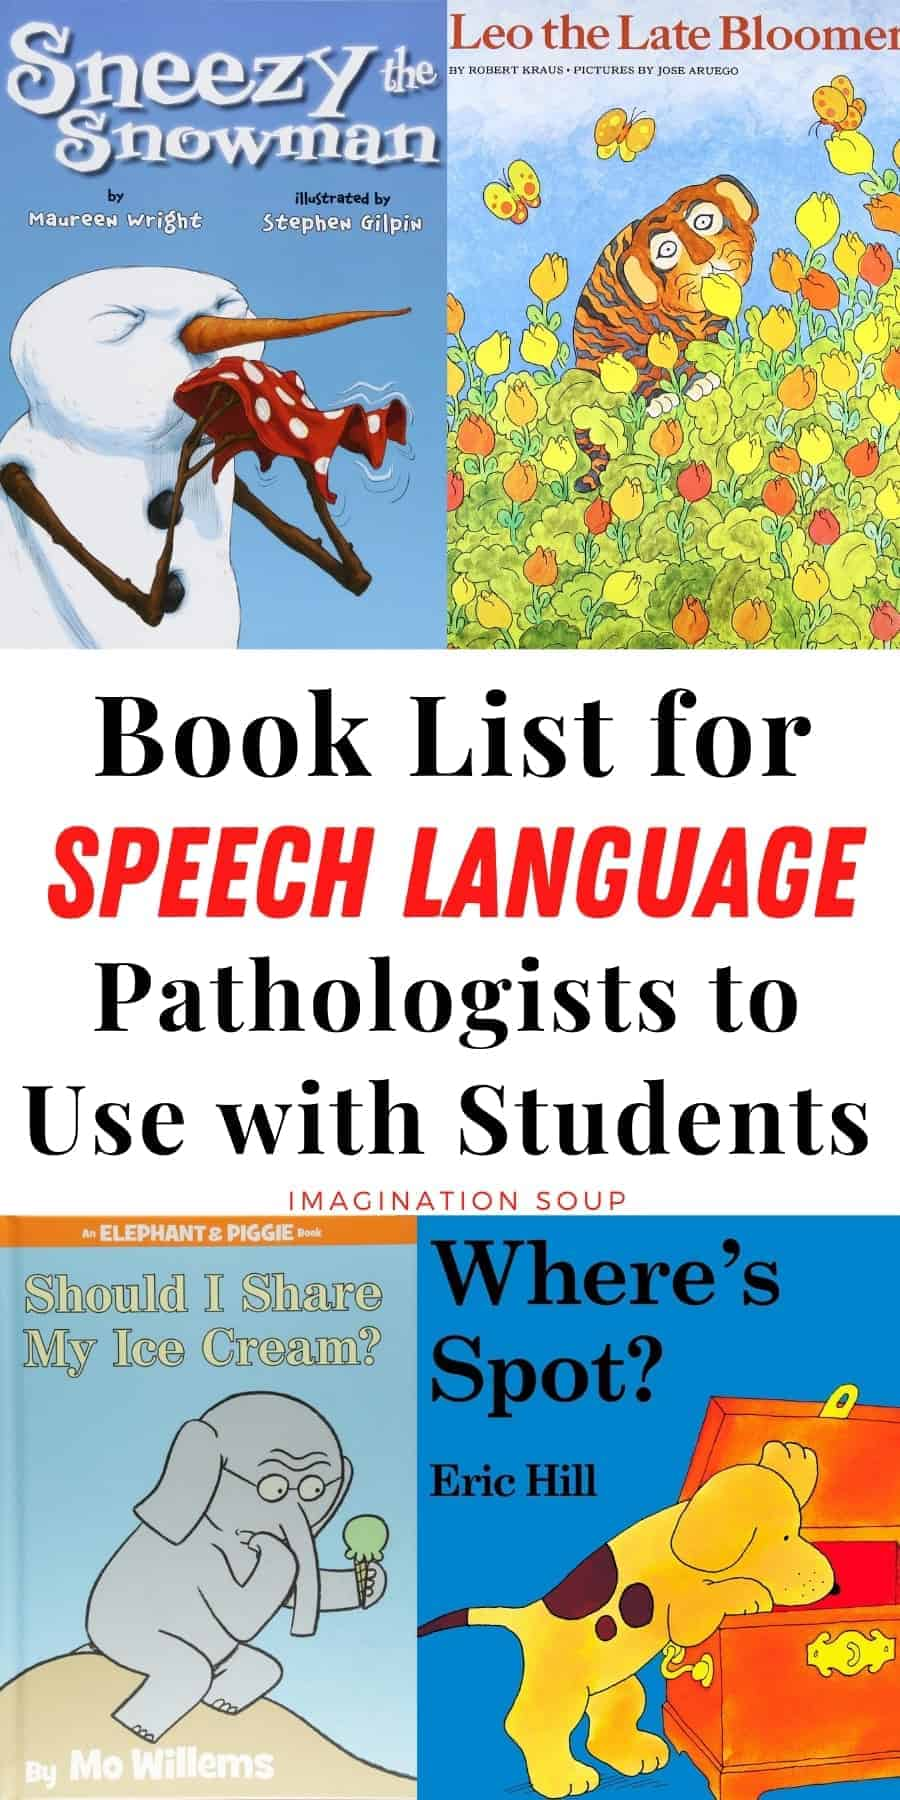 Children's Books for Speech Language Pathologists to Use with Students